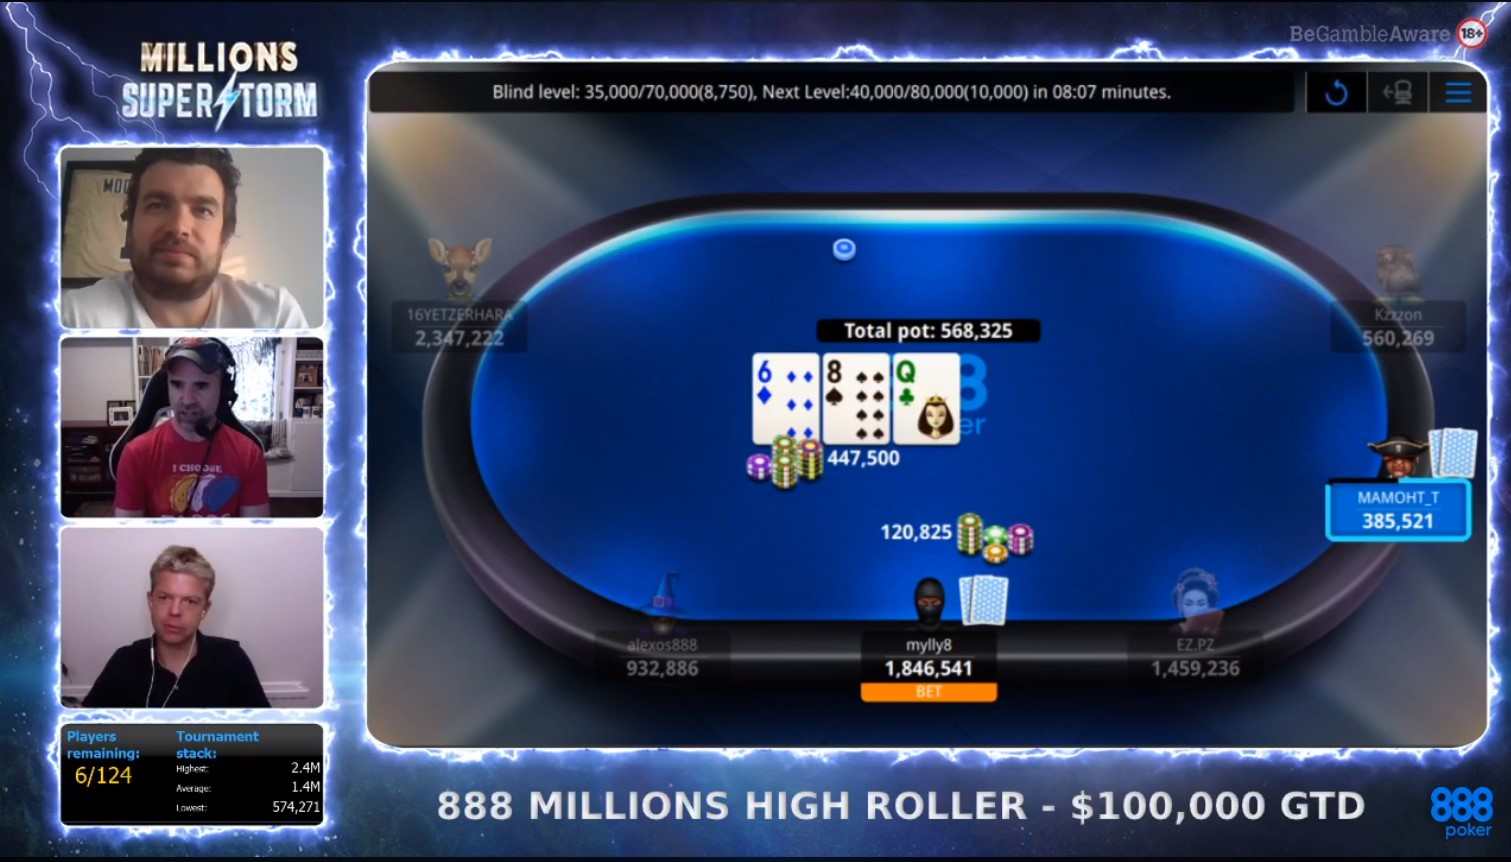 Moorman High Roller Final Table Results